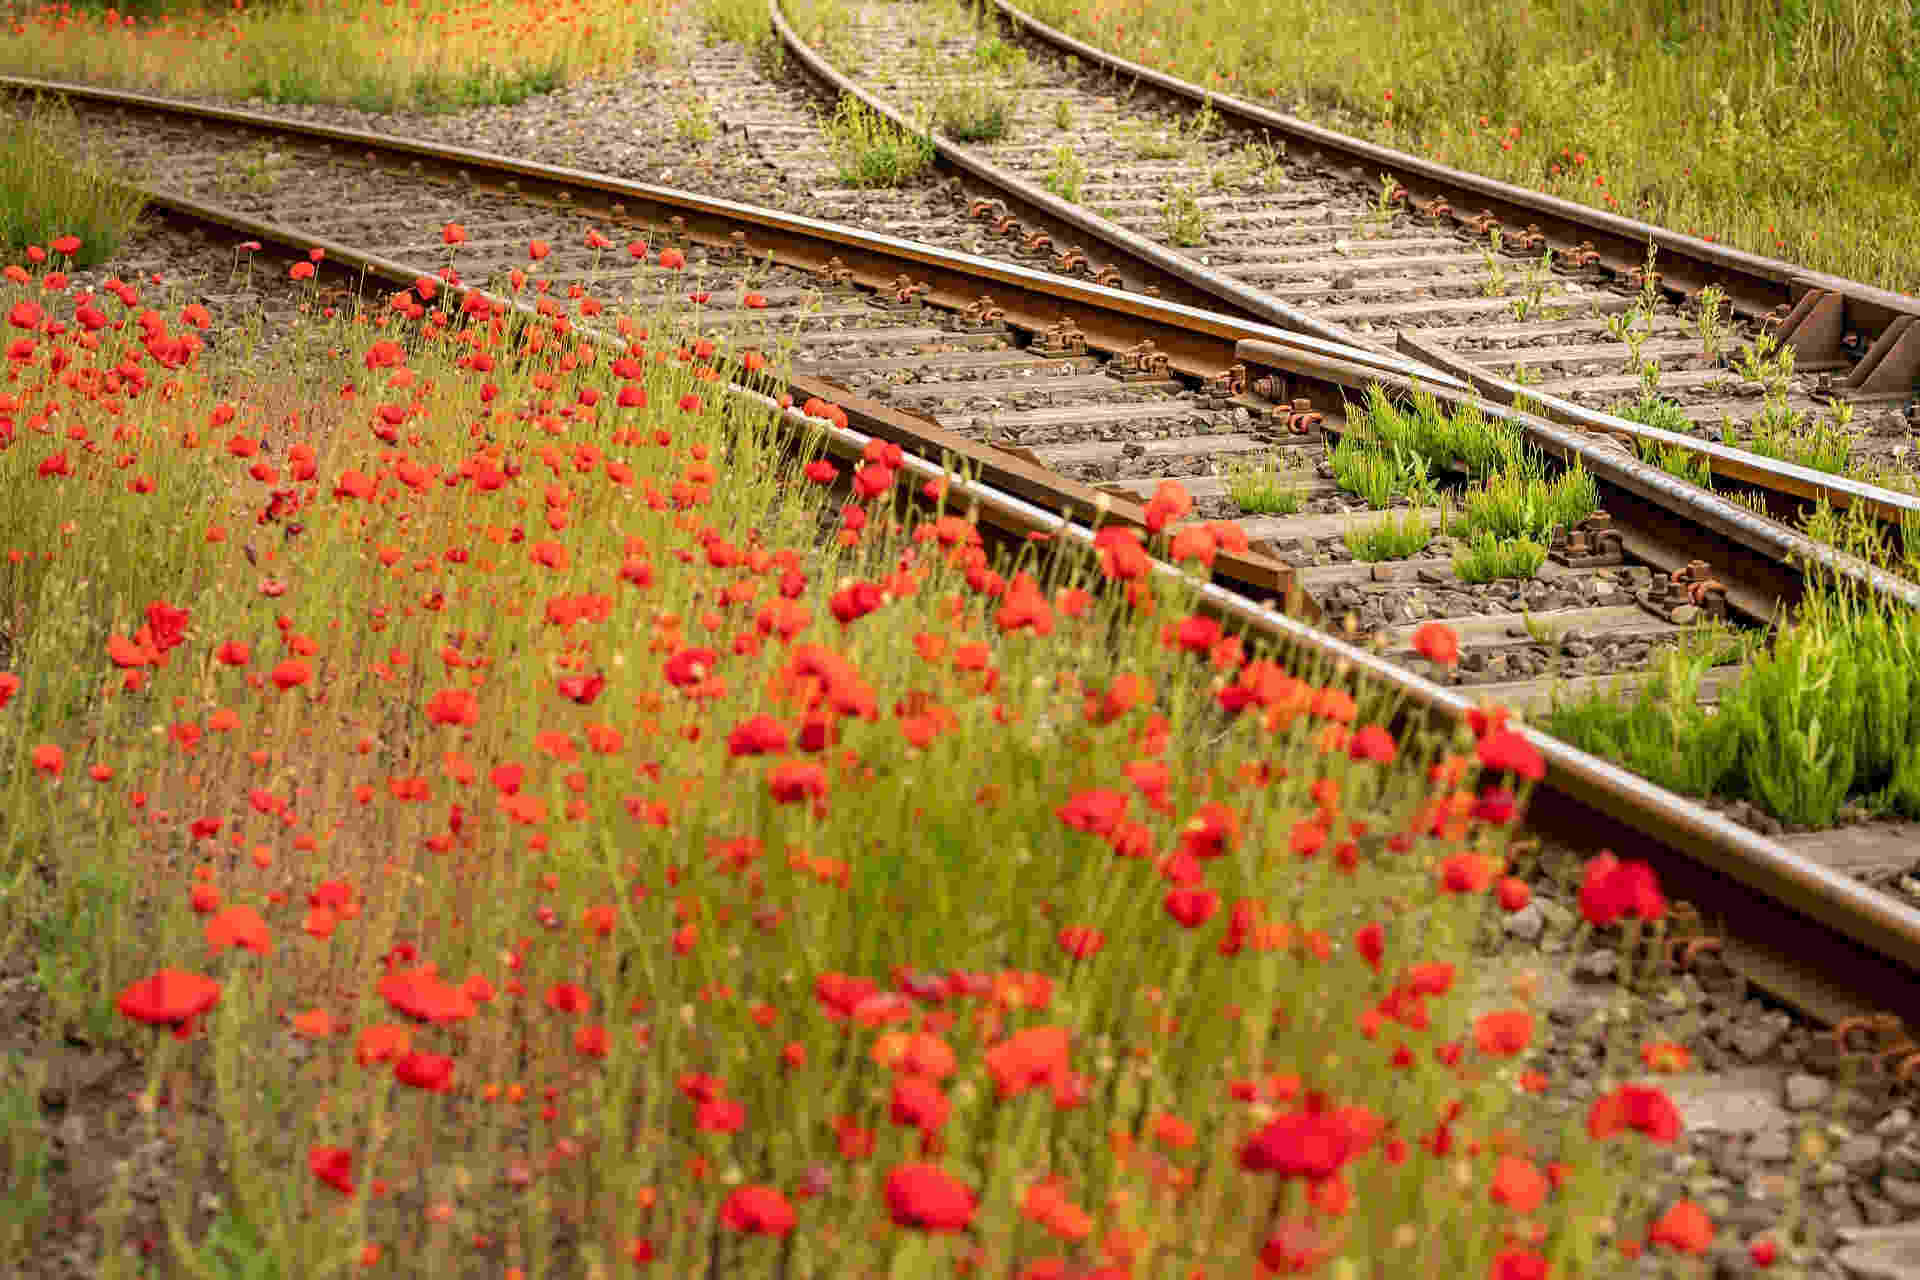 Tracks changing with poppies in foreground